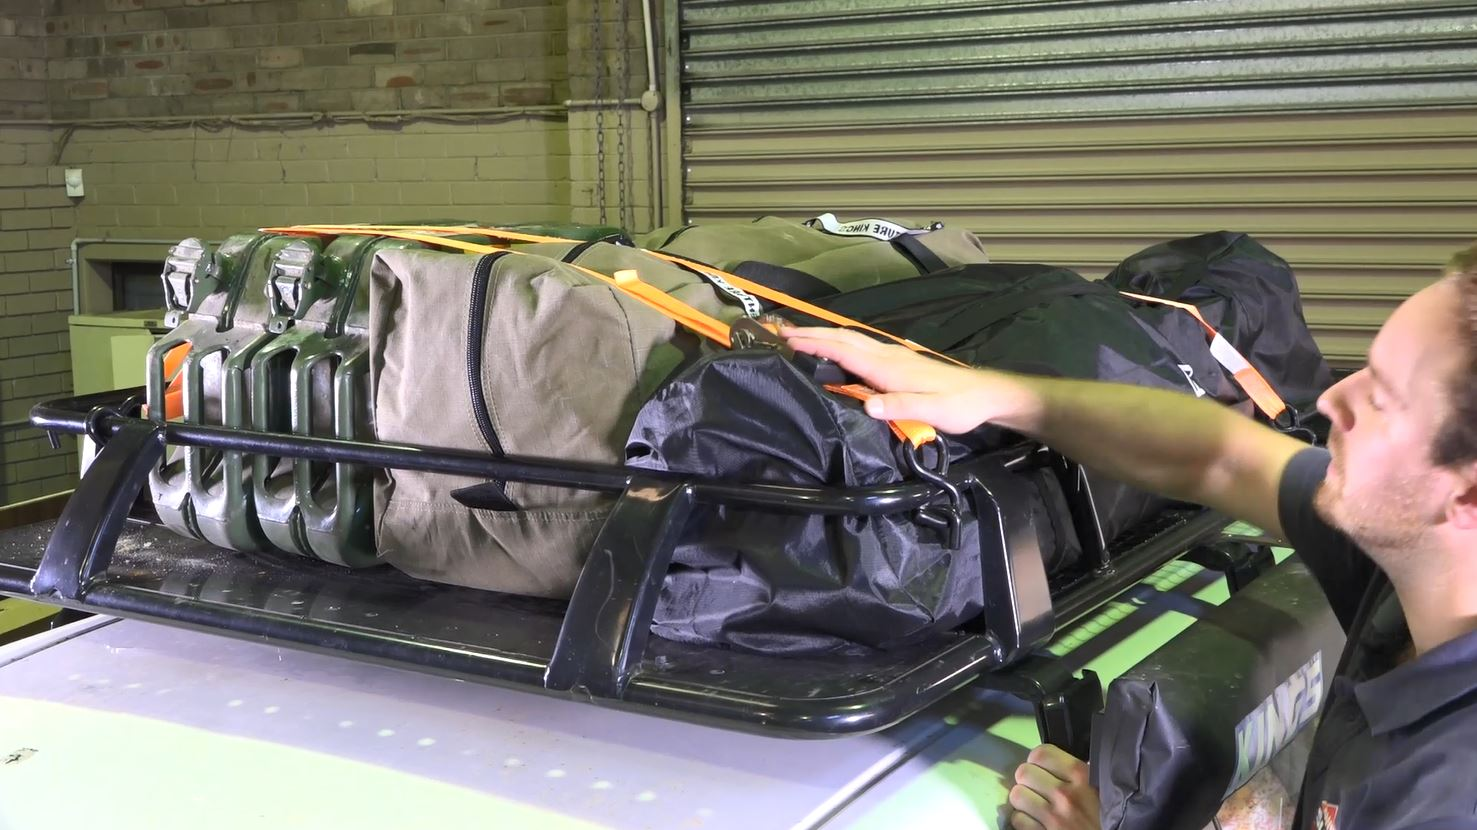 4Wd Supacentre Roof Rack Installation there is a lot more to roof rack design than meets the eyes